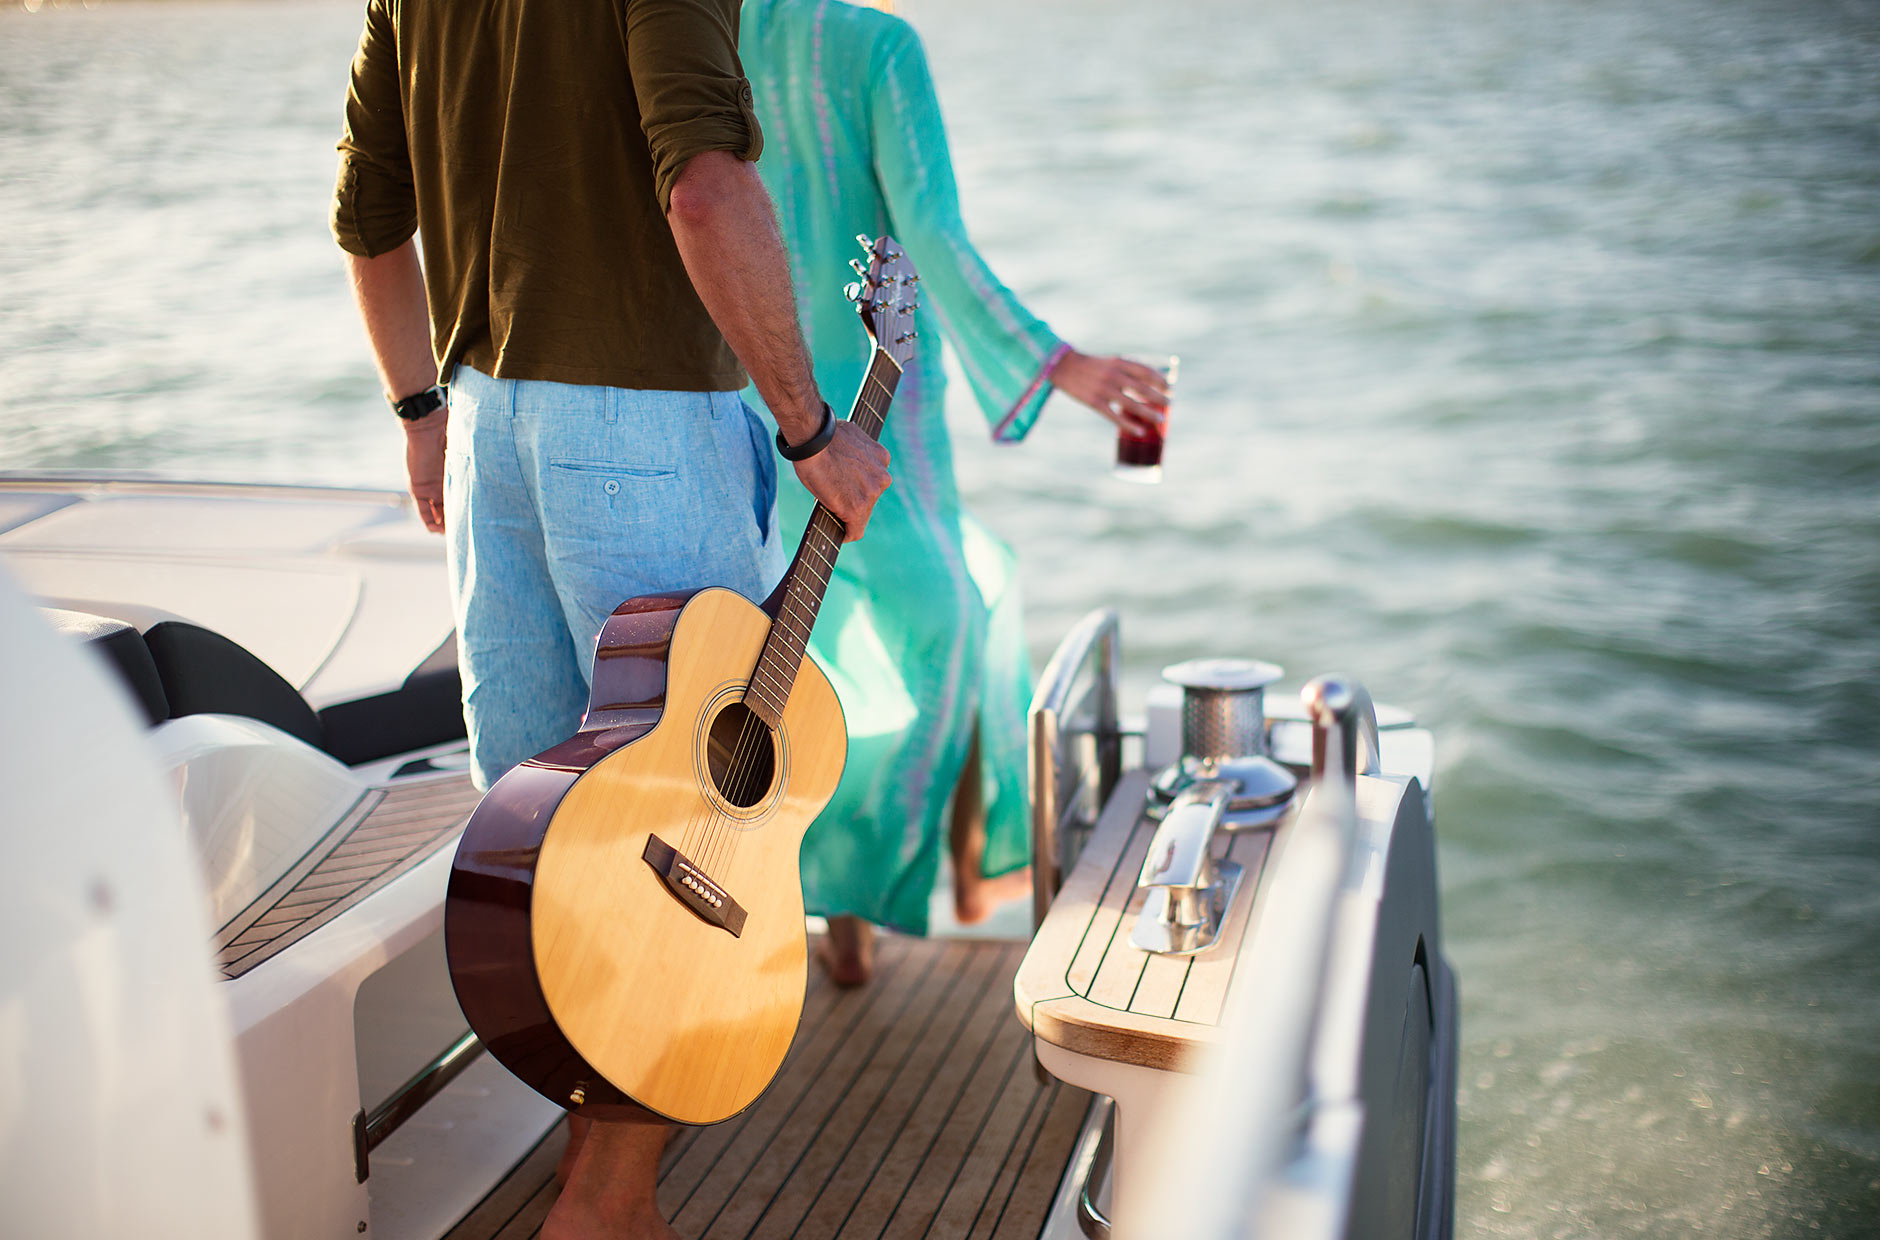 Guitar being carried on yacht